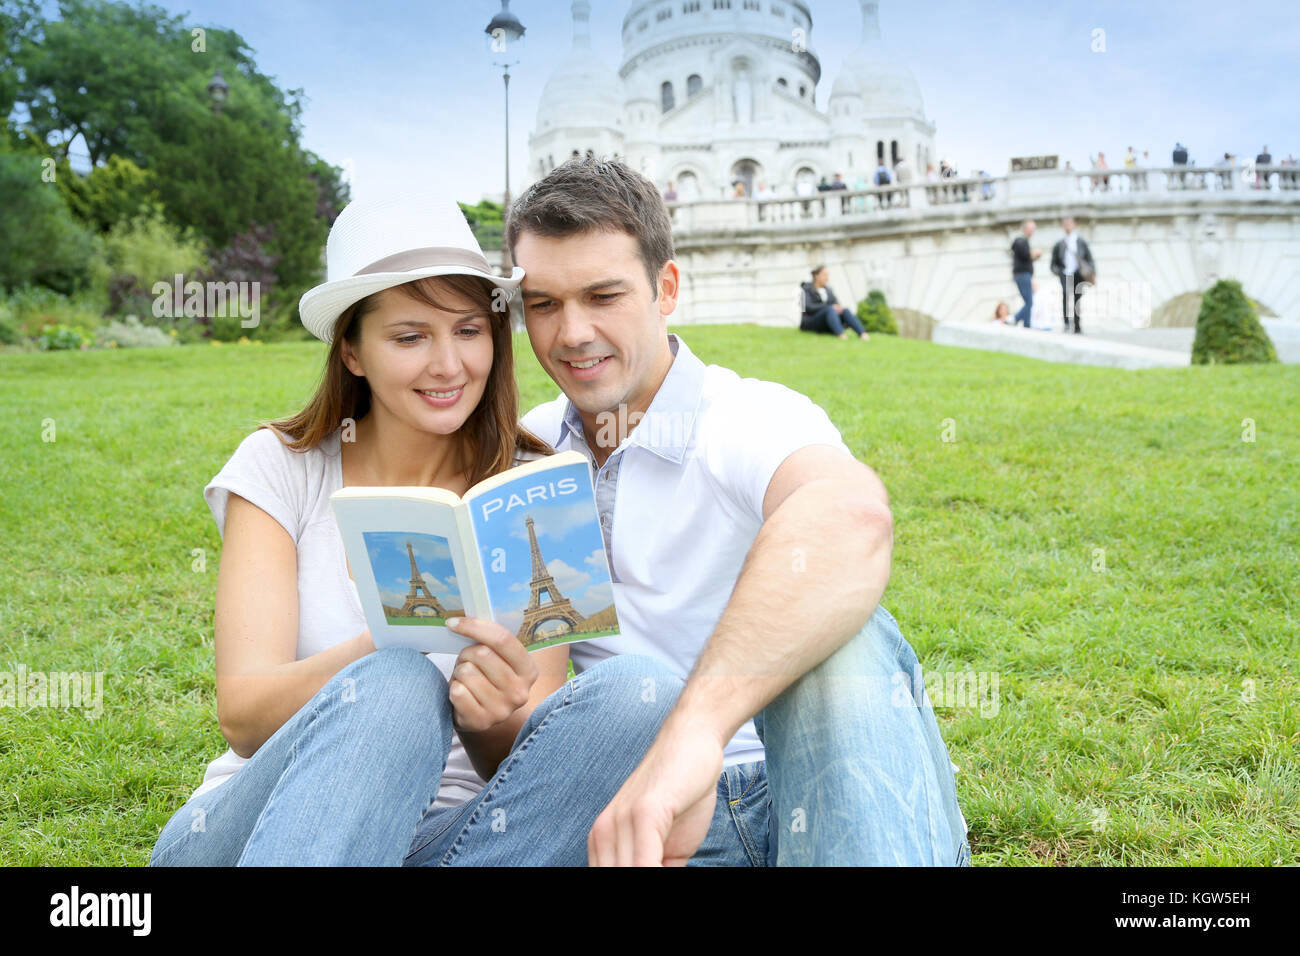 Couple in Paris sitting in front of Sacre Coeur Basilica - Stock Image